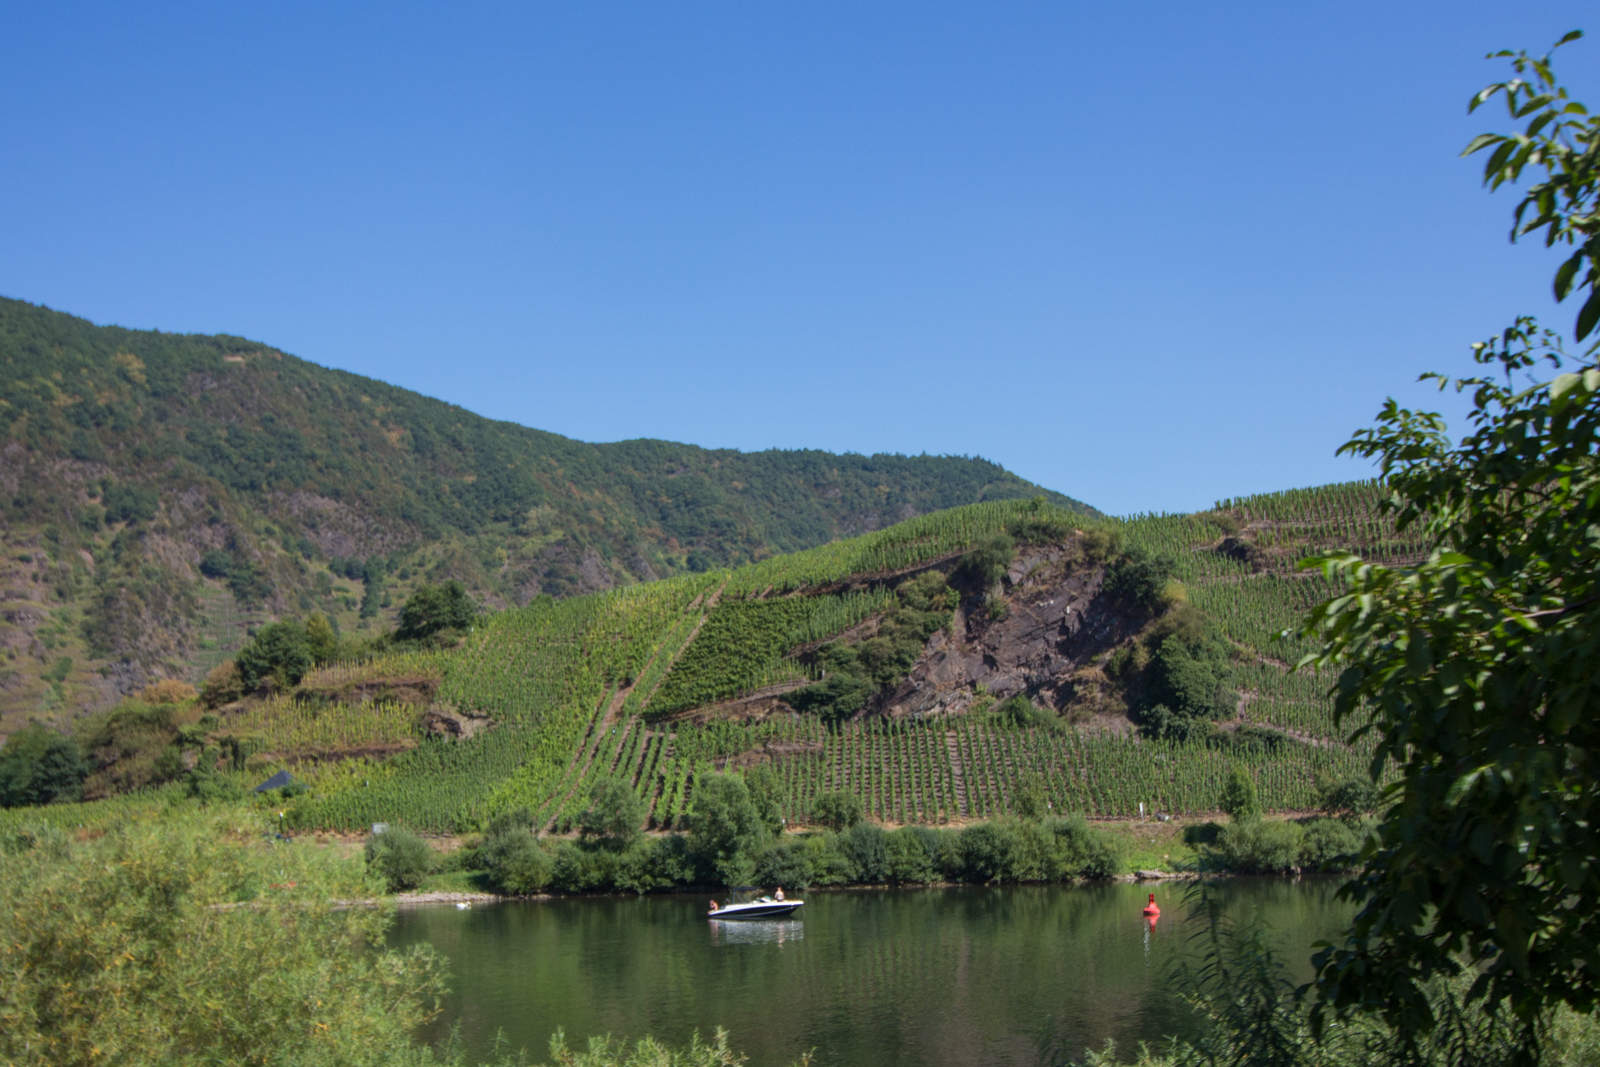 Wein, Mosel, Cabrio, Moseltour, Cabriotour an der Mosel,